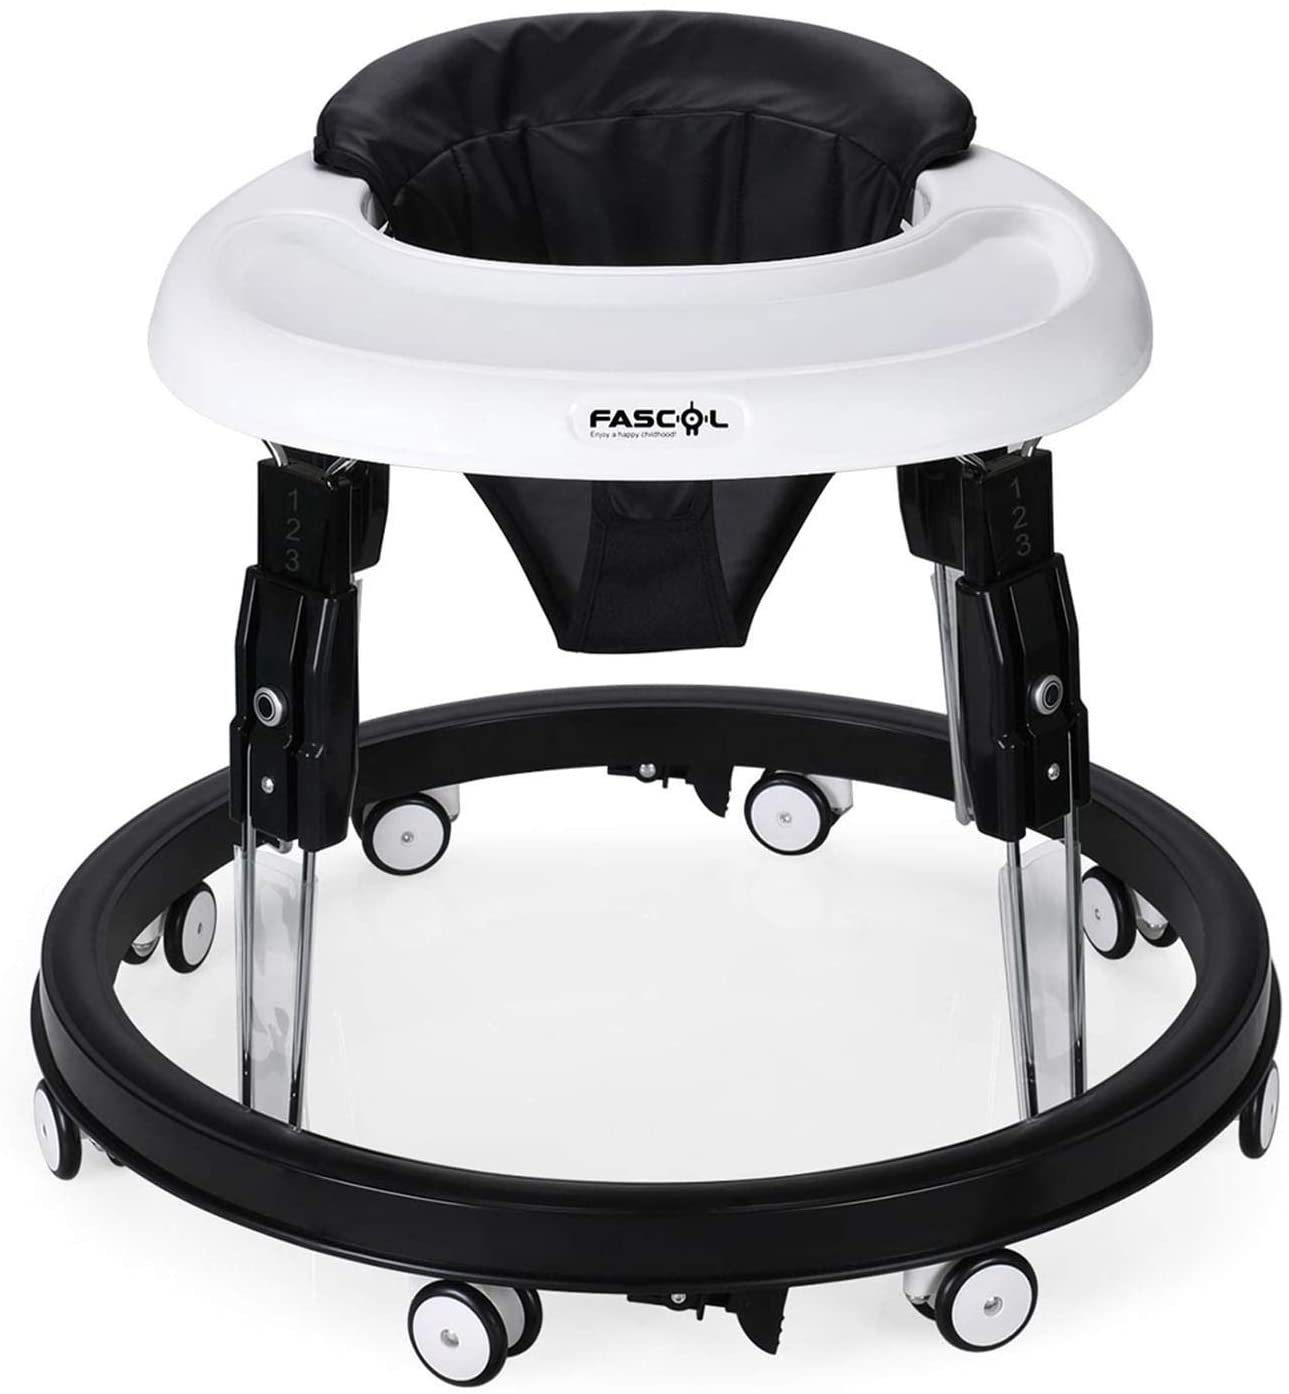 Height adjustable folding toddler walker with 8 wheels.